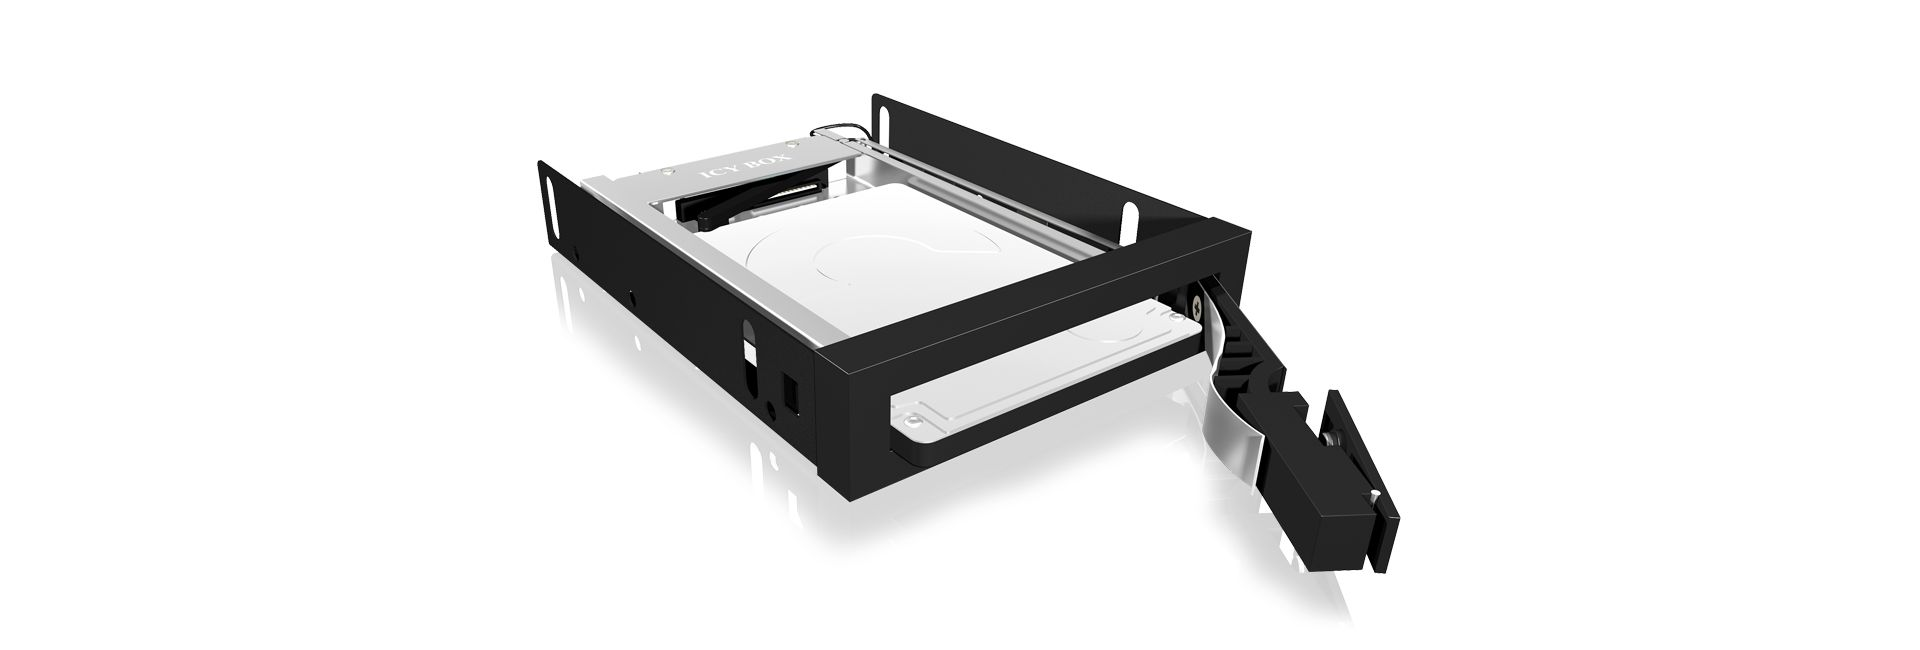 Raidsonic IcyBox IB-2217STS Mobile Rack for 2.5 SATA HDD or SSD (IB-2217STS)